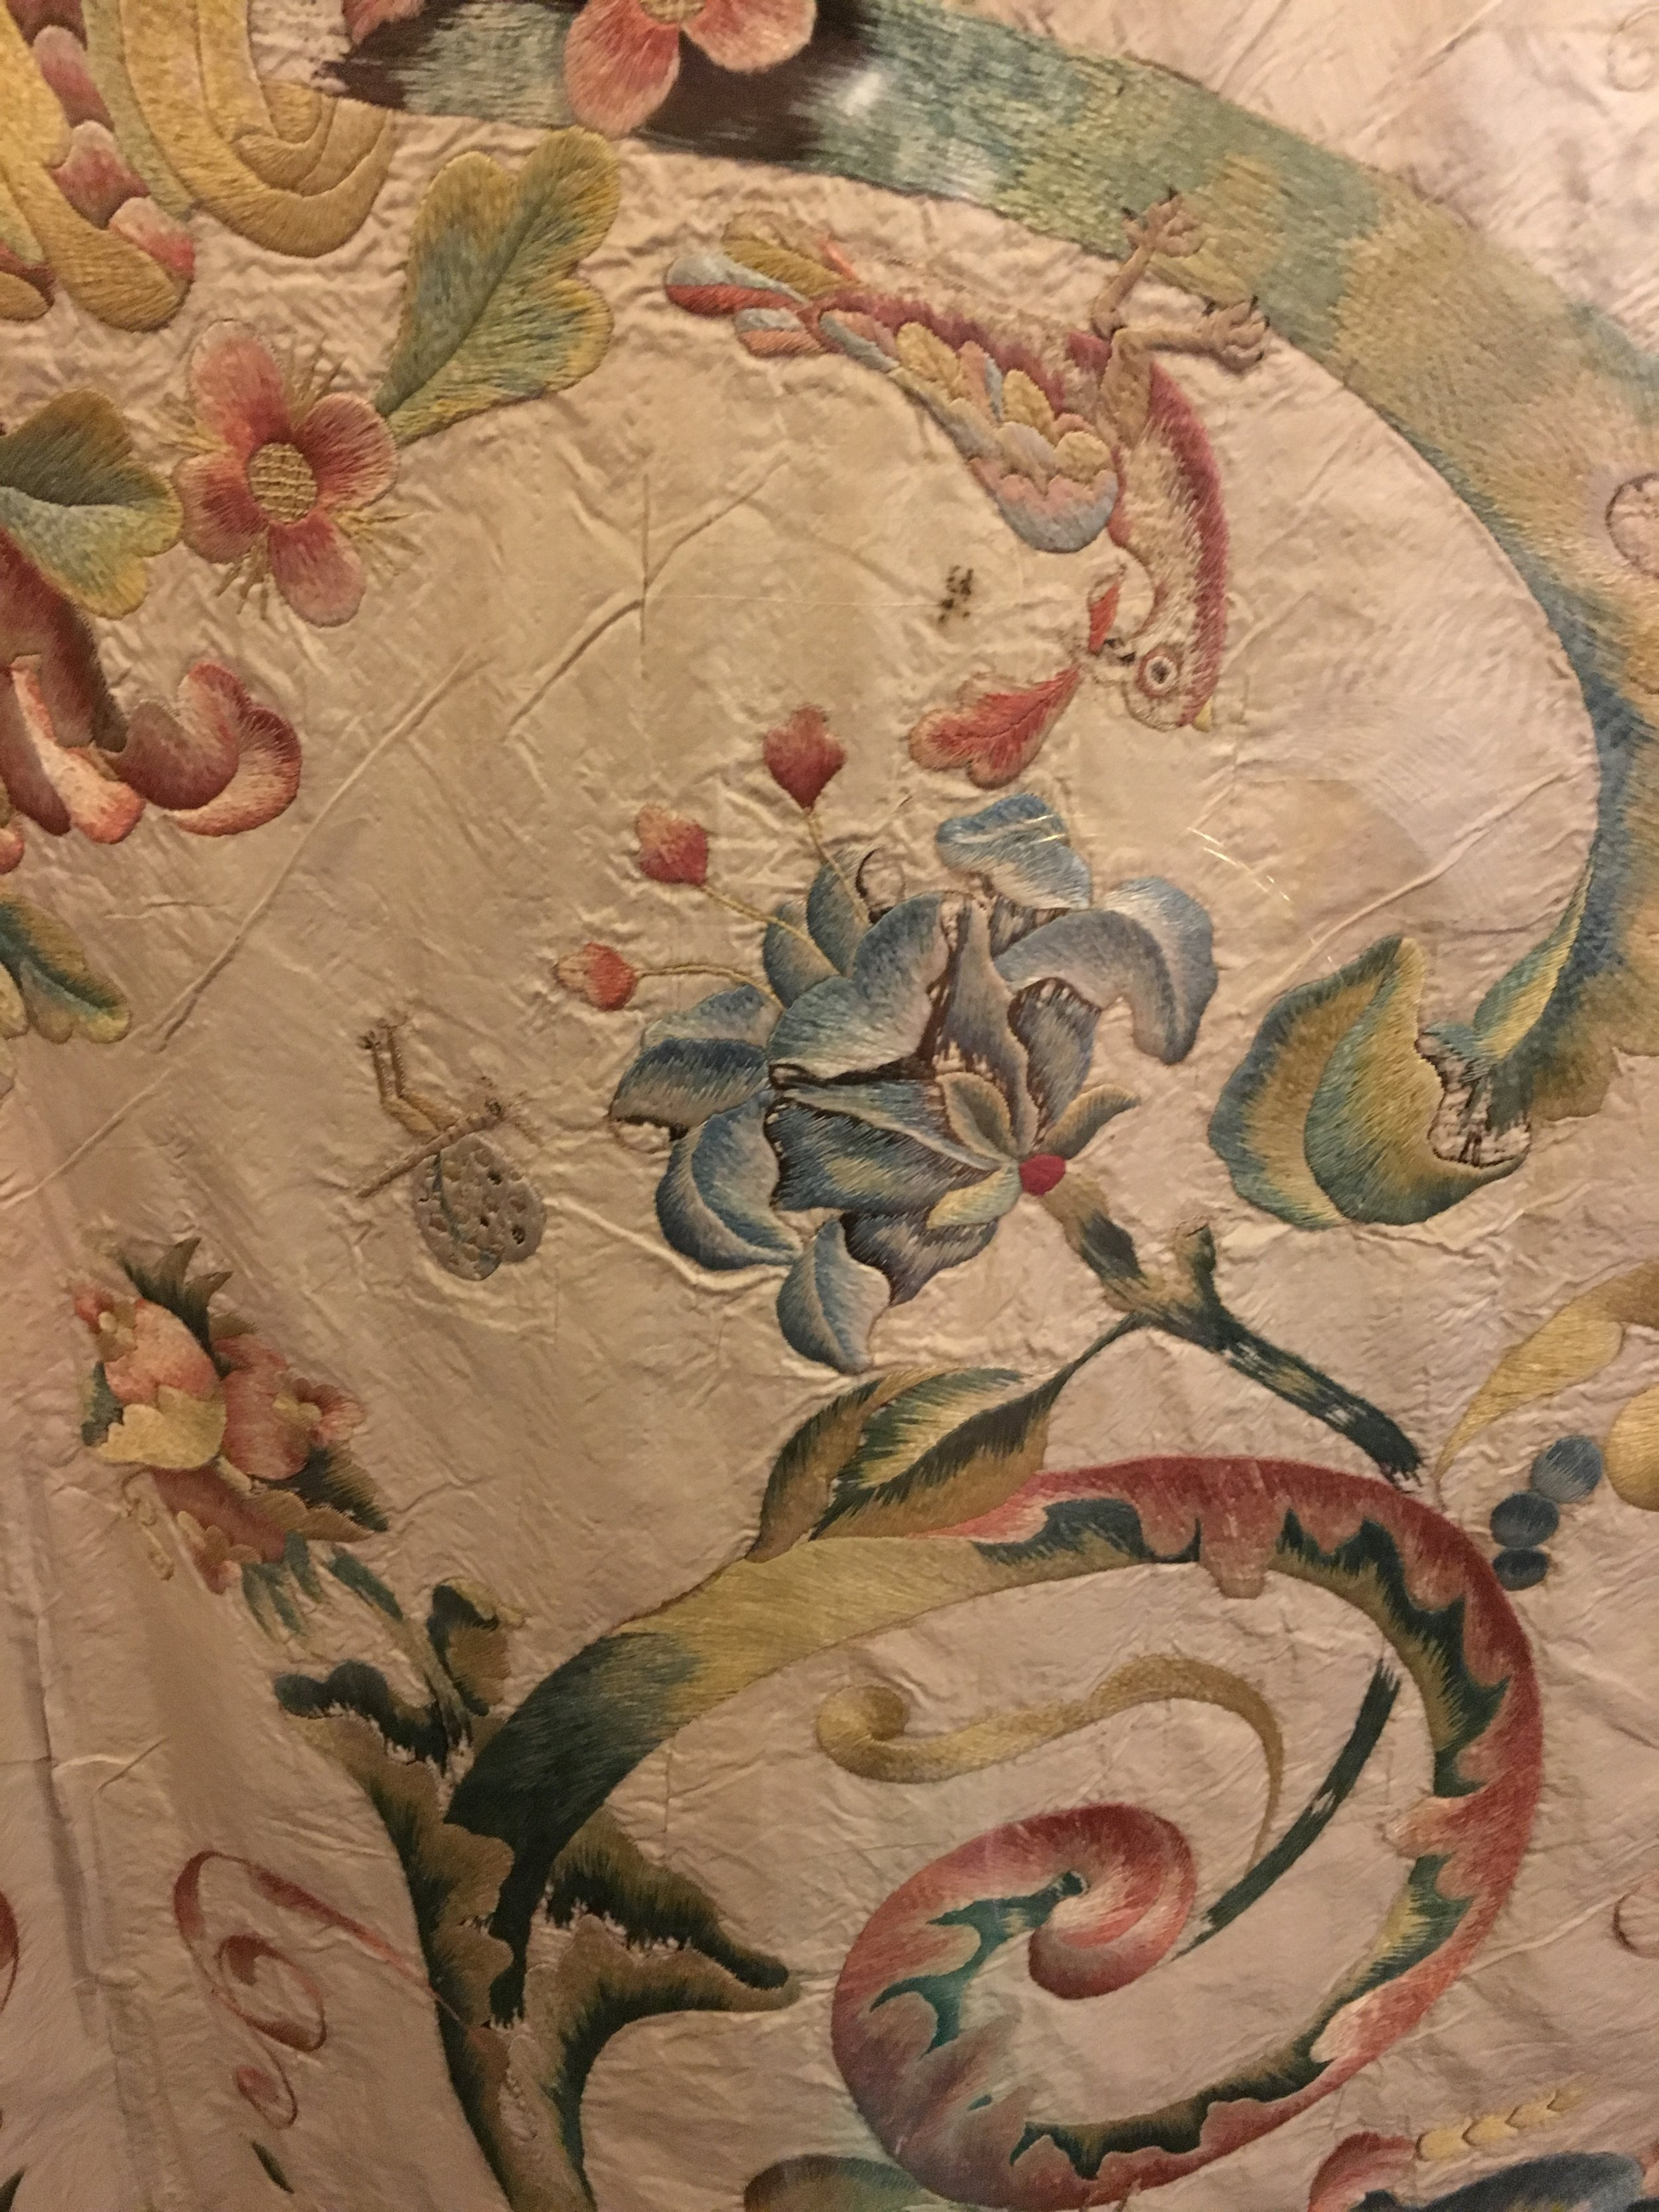 Coverlet (detail), silk, embroidered with silk, Chinese, 1768. In the Museu Nacional de Arte Antiga, Lisboa. (Photograph J. Cook)